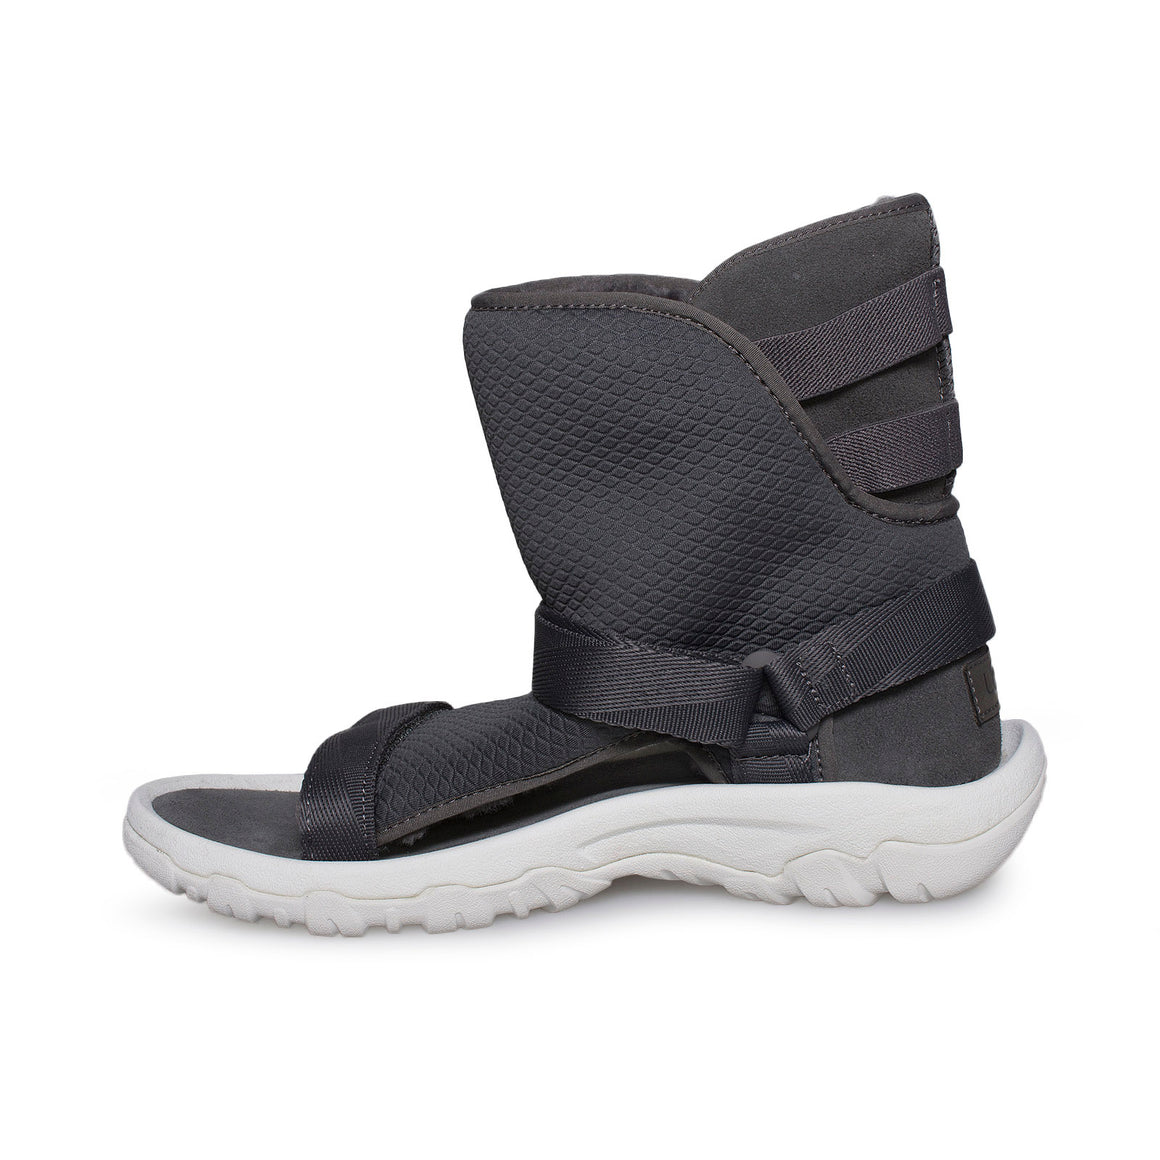 UGG/TEVA Collaboration - Hybrid Dark Gull